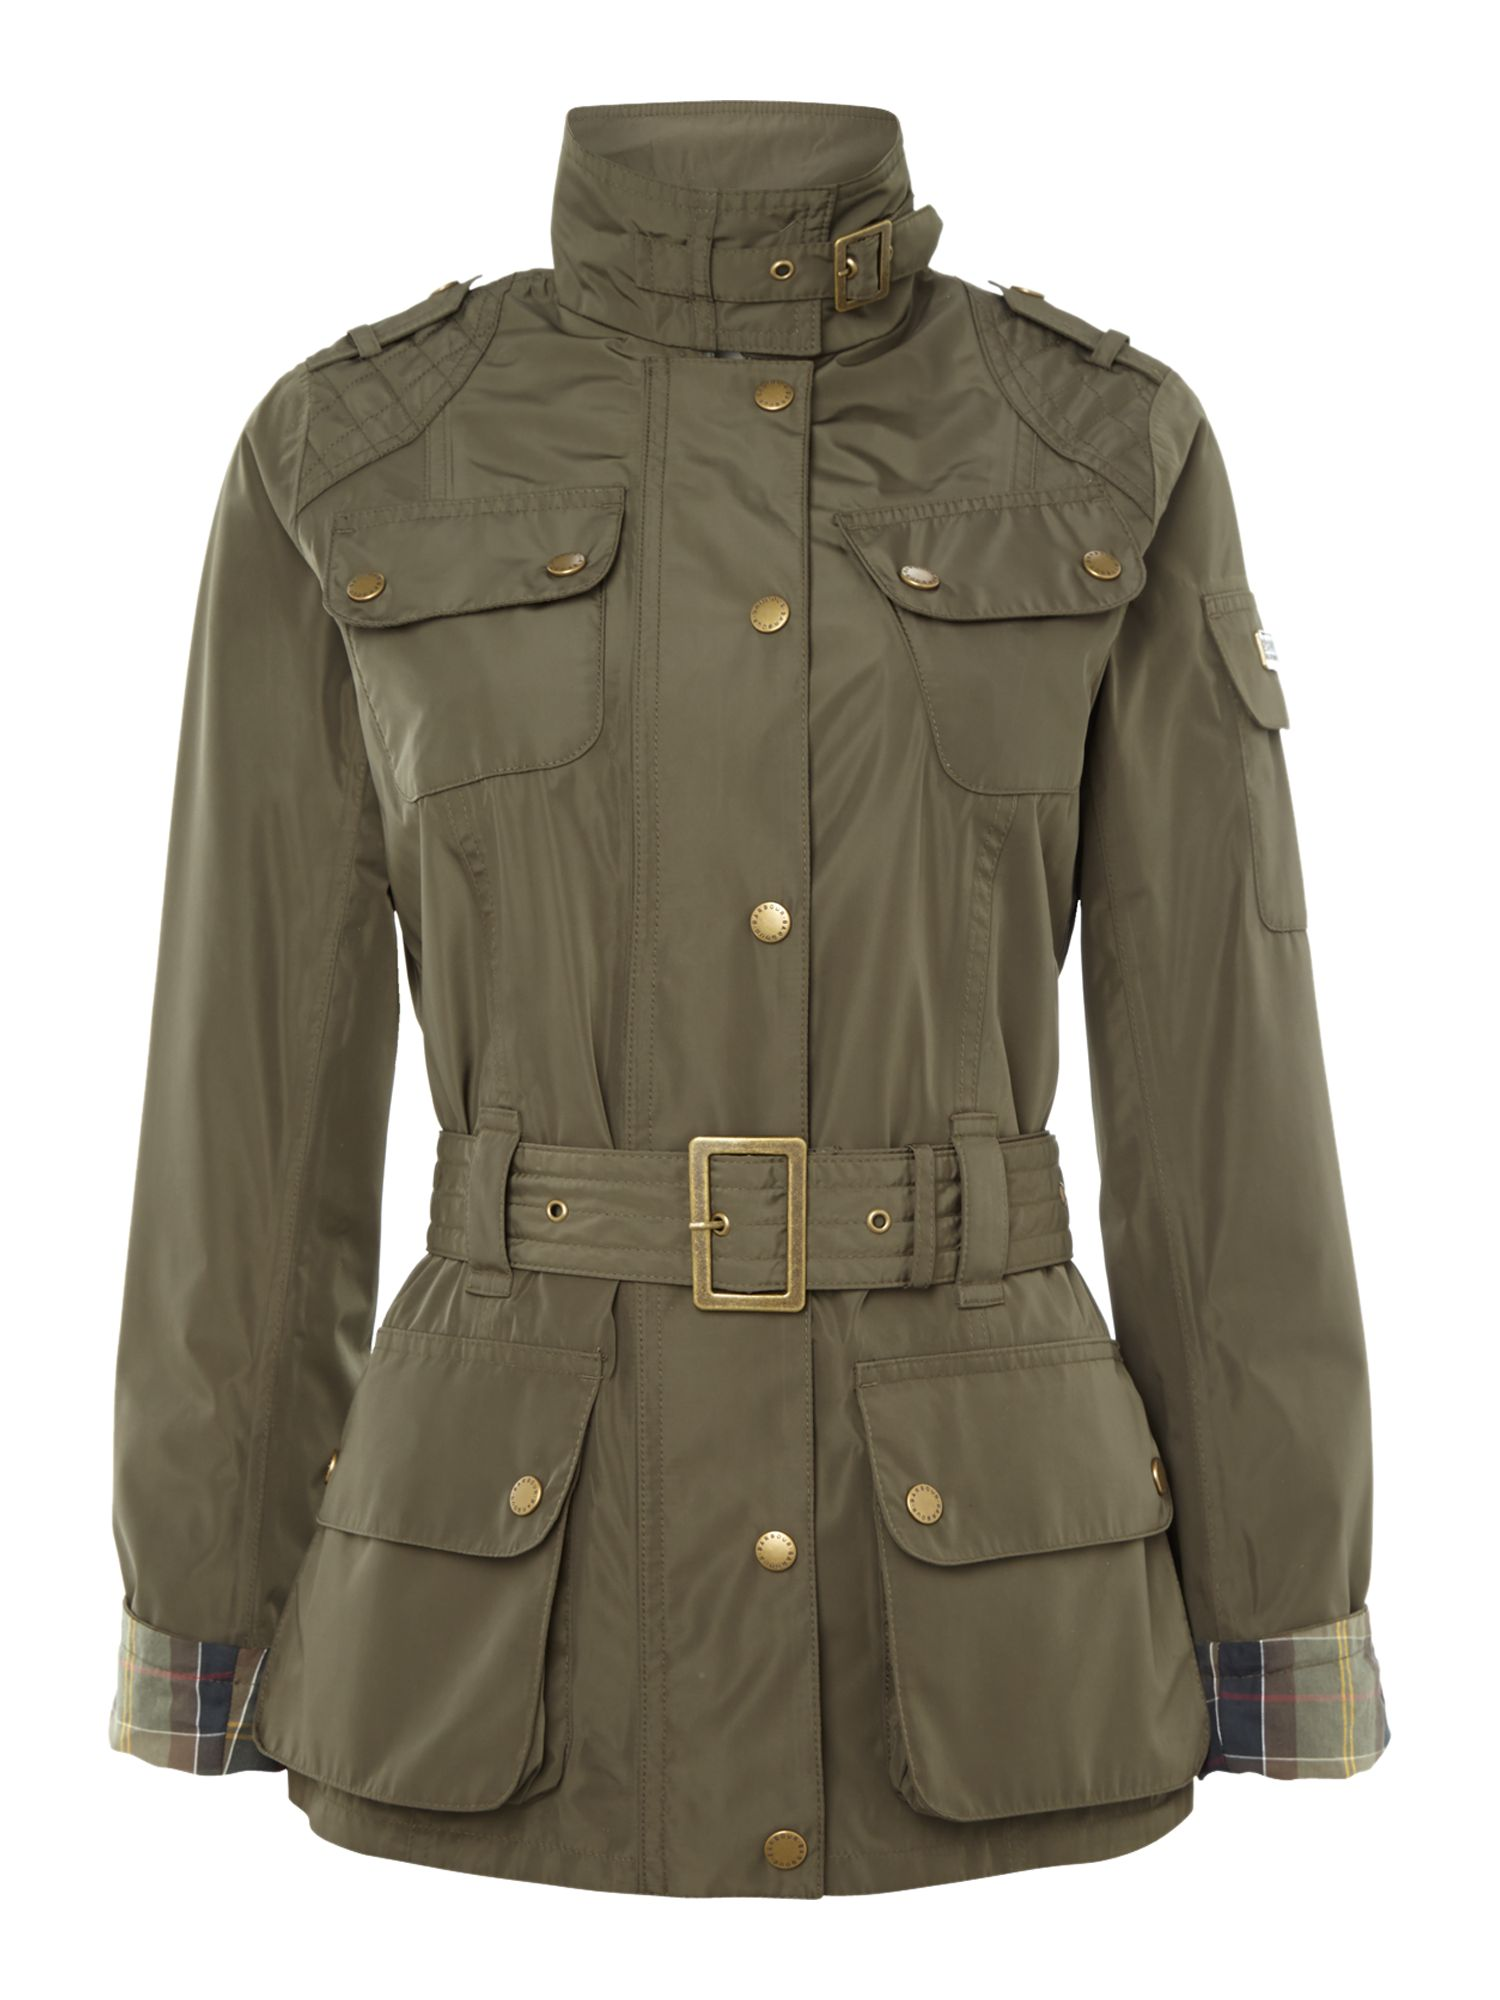 Eastern International Waterproof Jacket